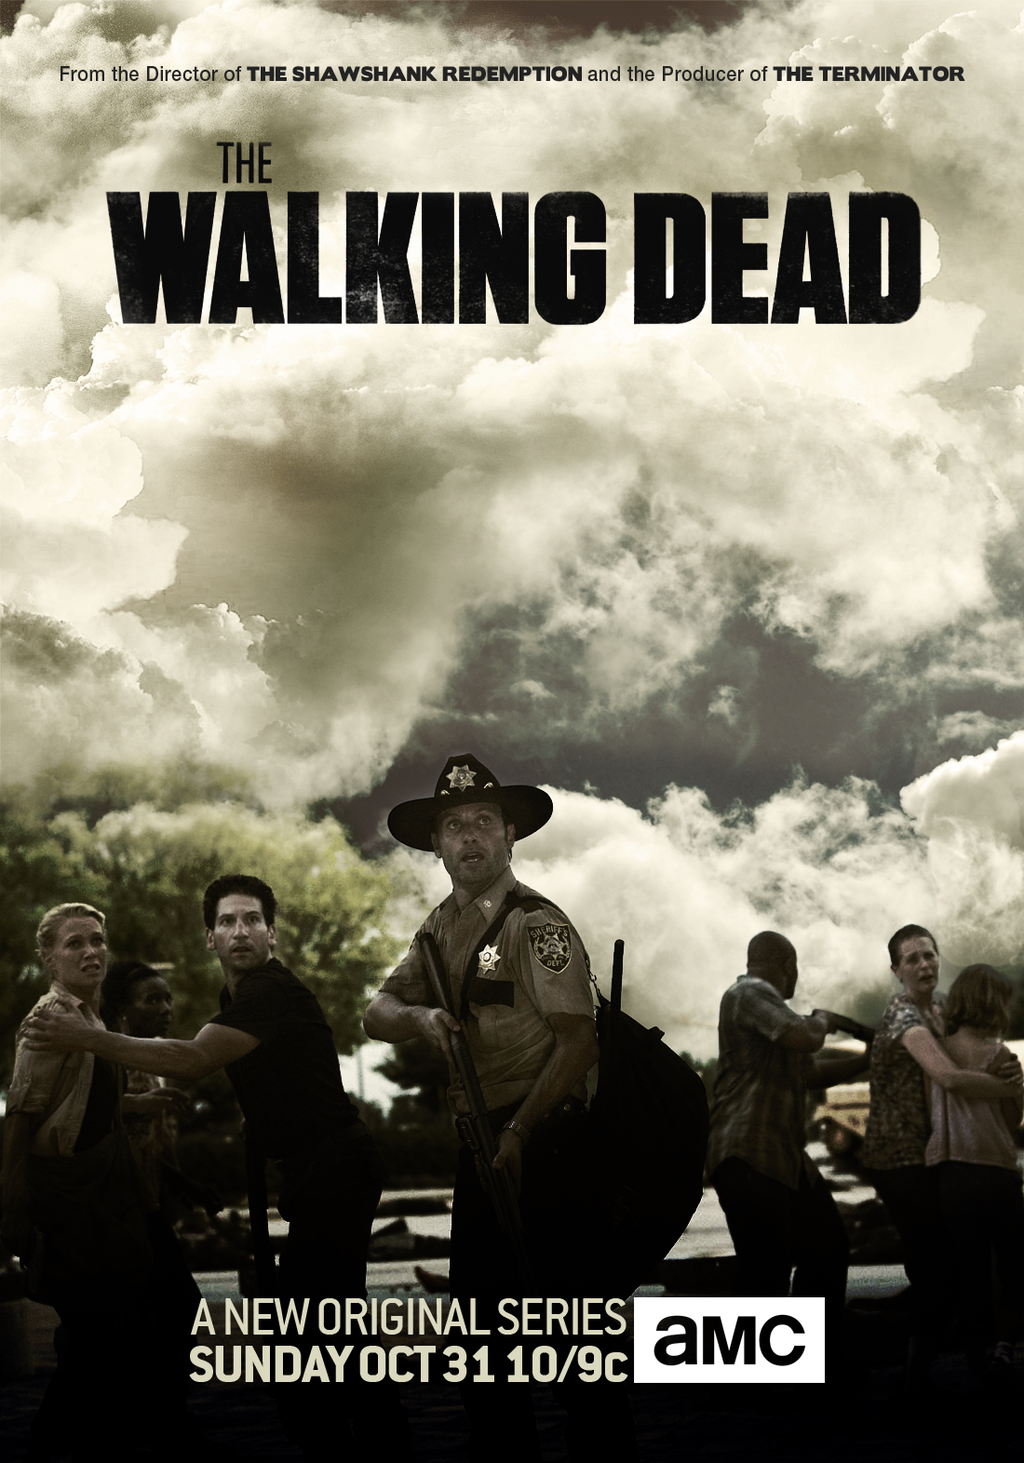 The Walking Dead Season 4 Poster By Jevangood On Deviantart The Walking Dead Poster The Walking Dead Walking Dead Season